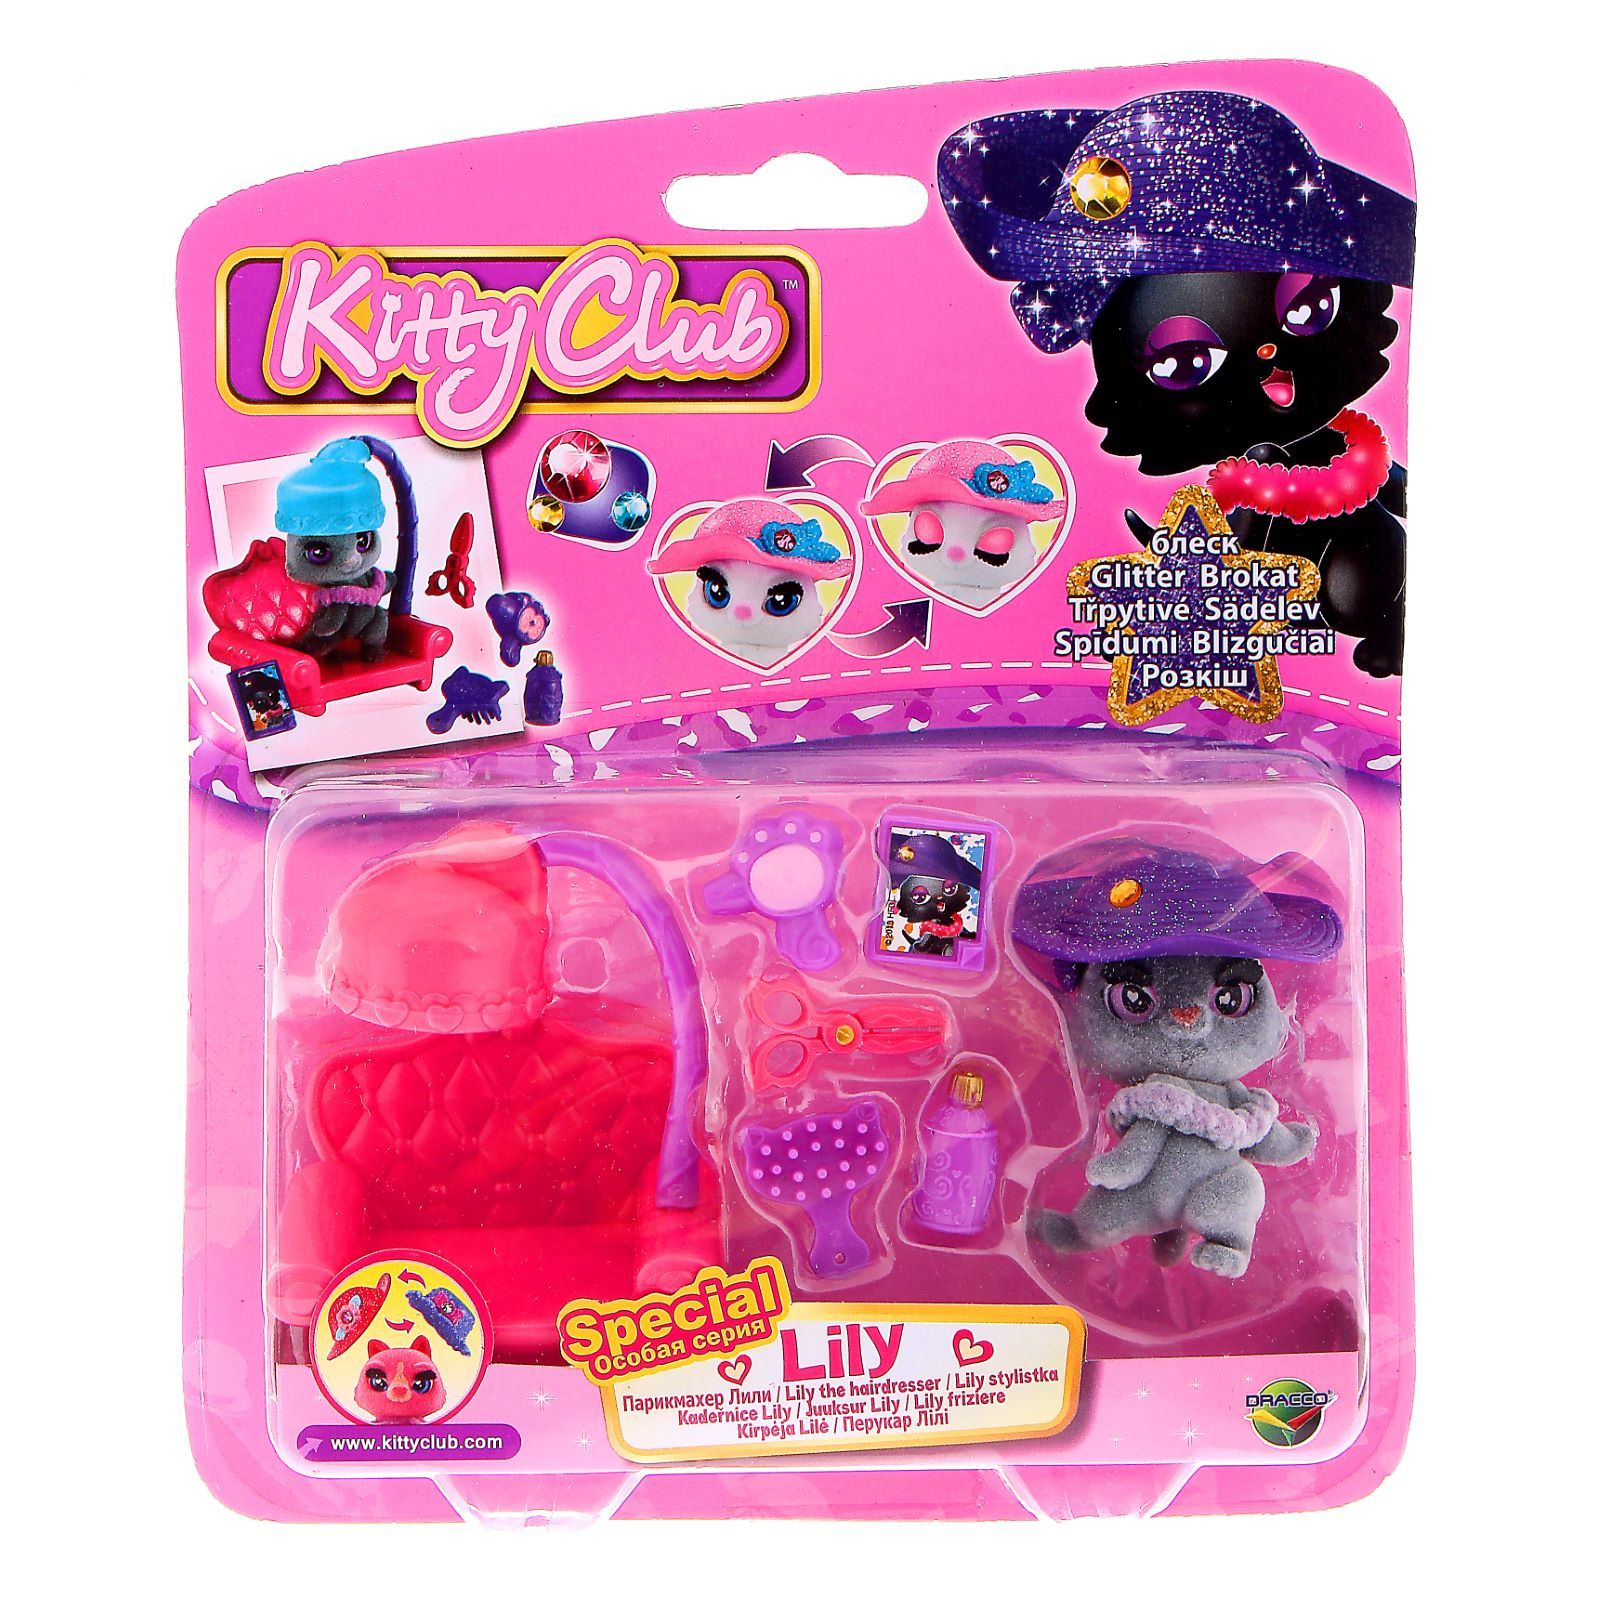 KITTY CLUB ACCESSORY BLISTER